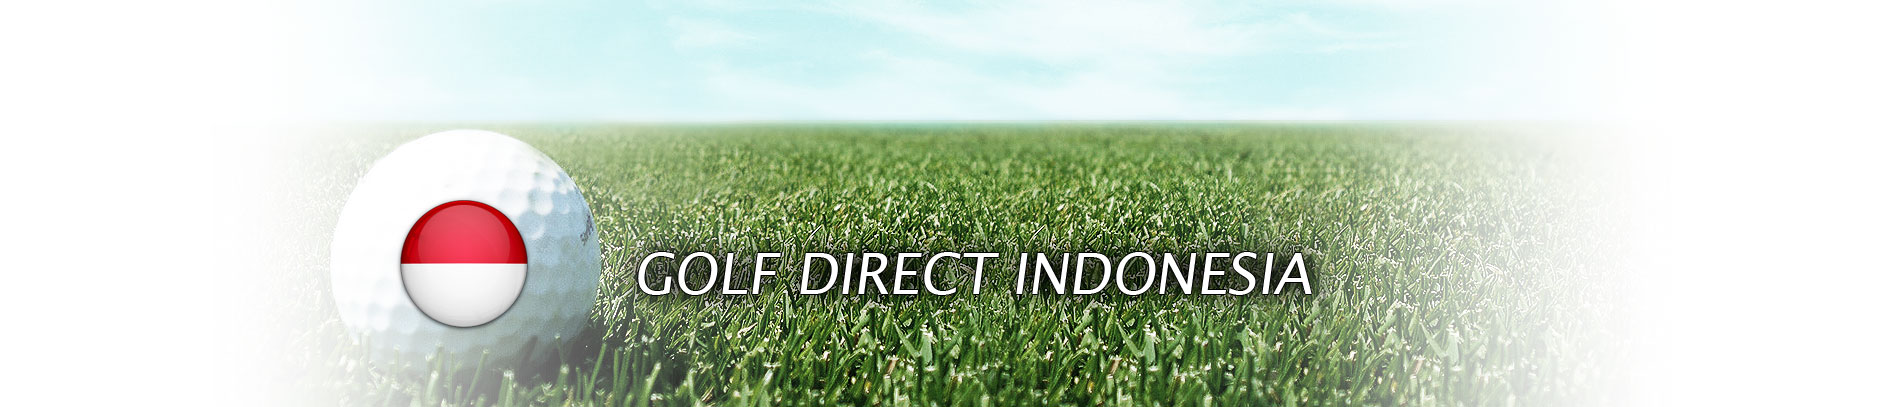 Golf Direct Indonesia